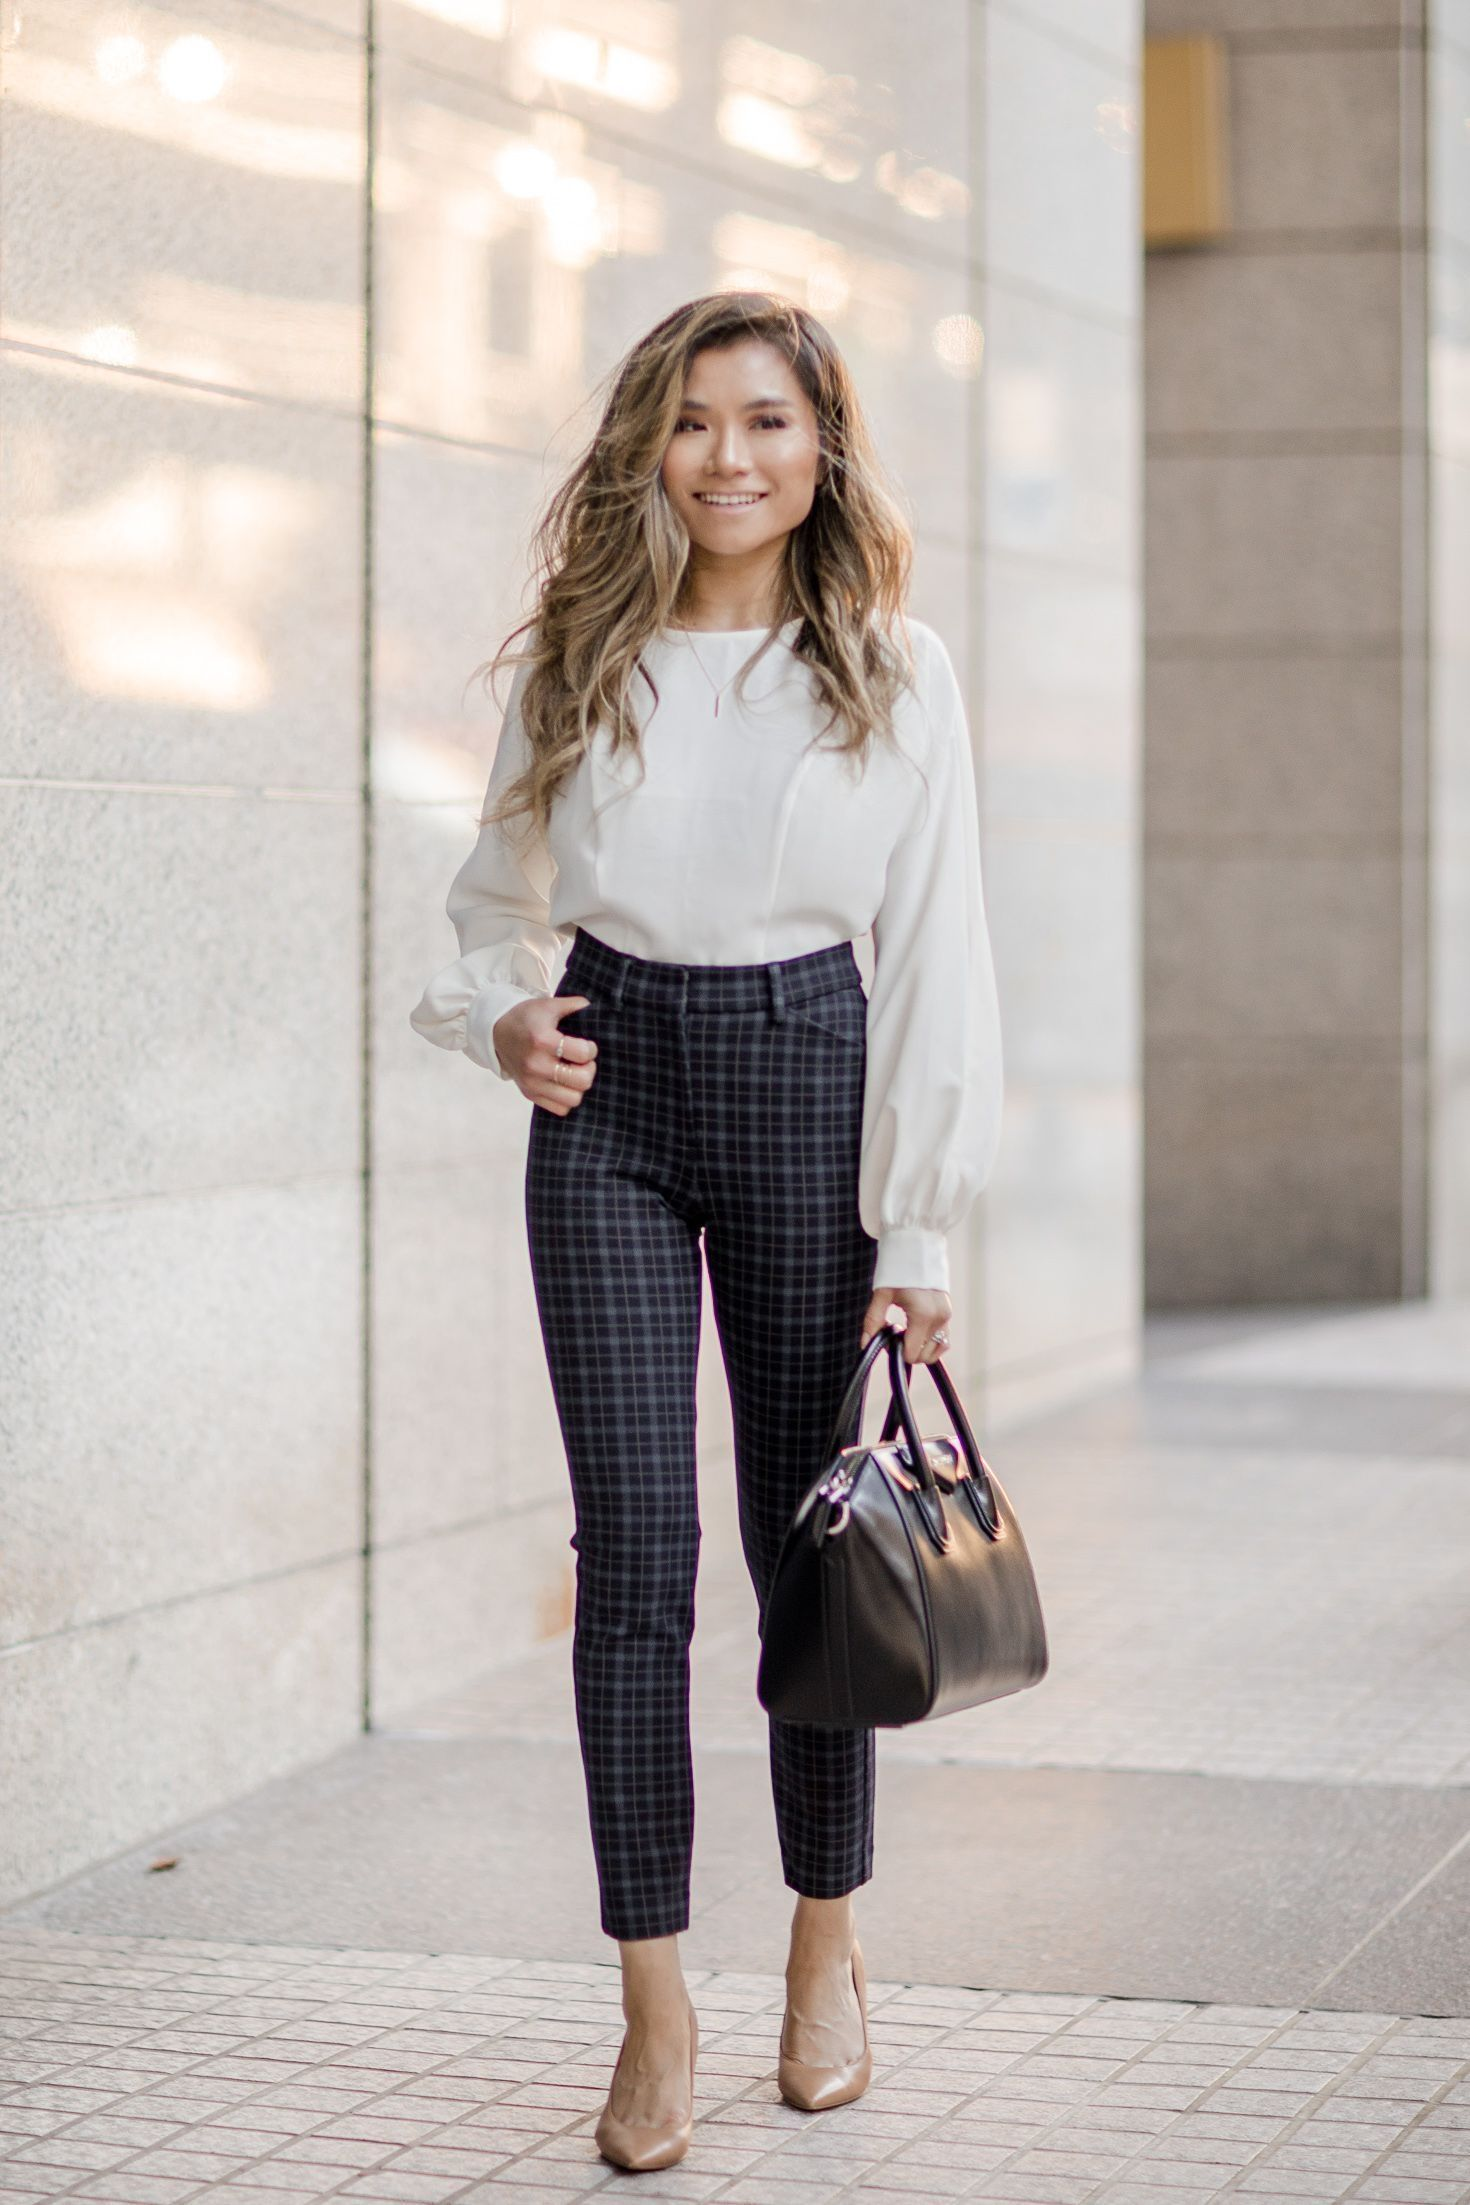 39 Casual Women Outfit Of The Day